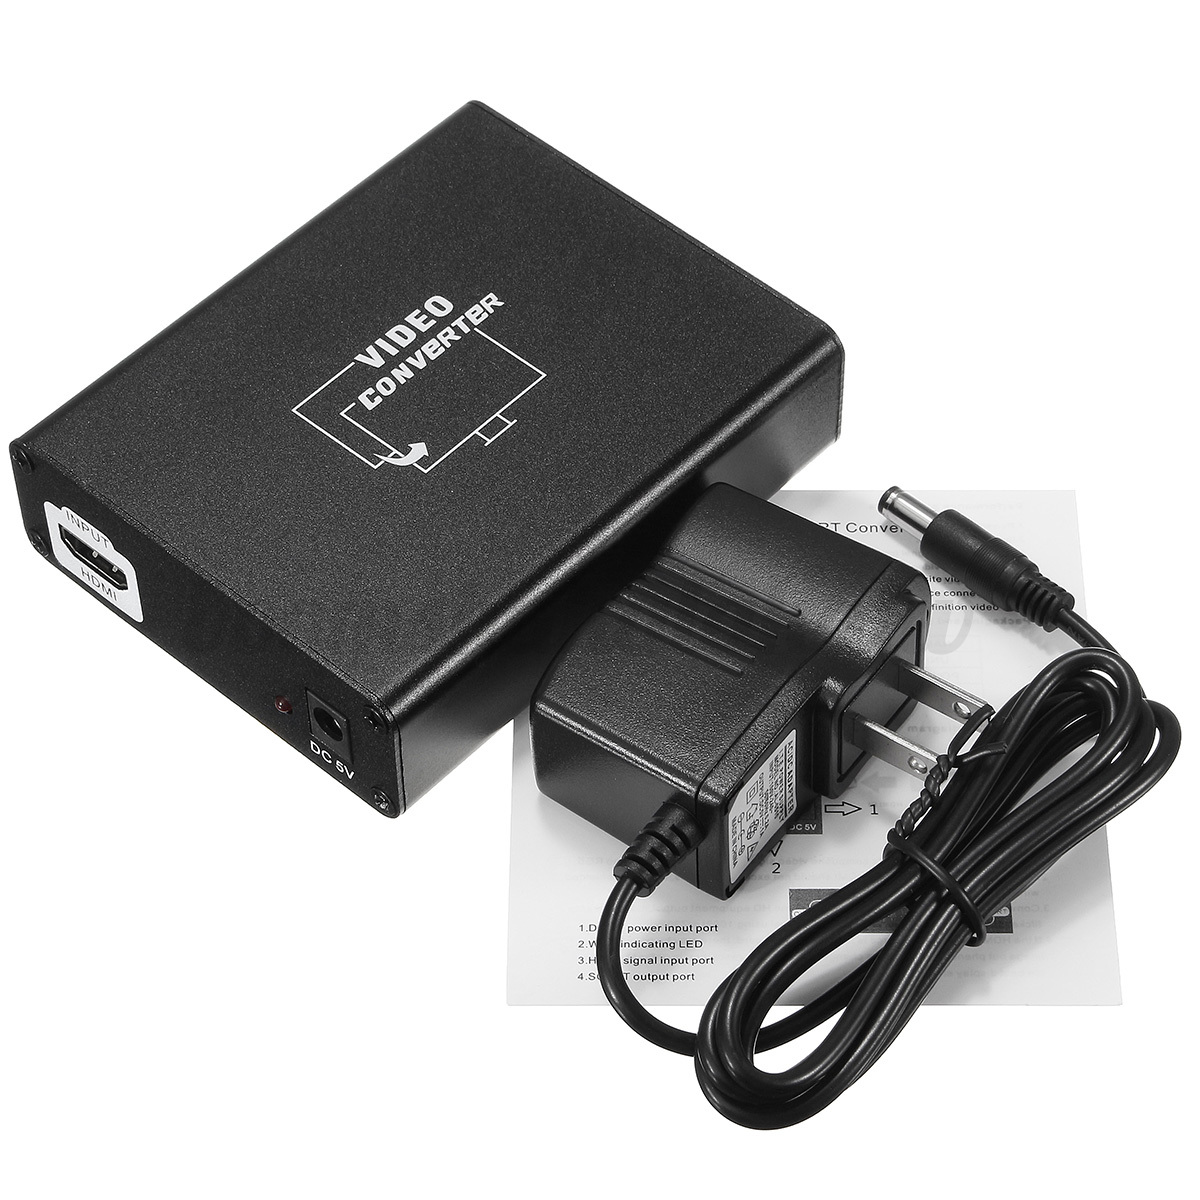 Hdmi Naar Scart Adapter Hdmi To Scart Composite Video Converter Stereo Audio